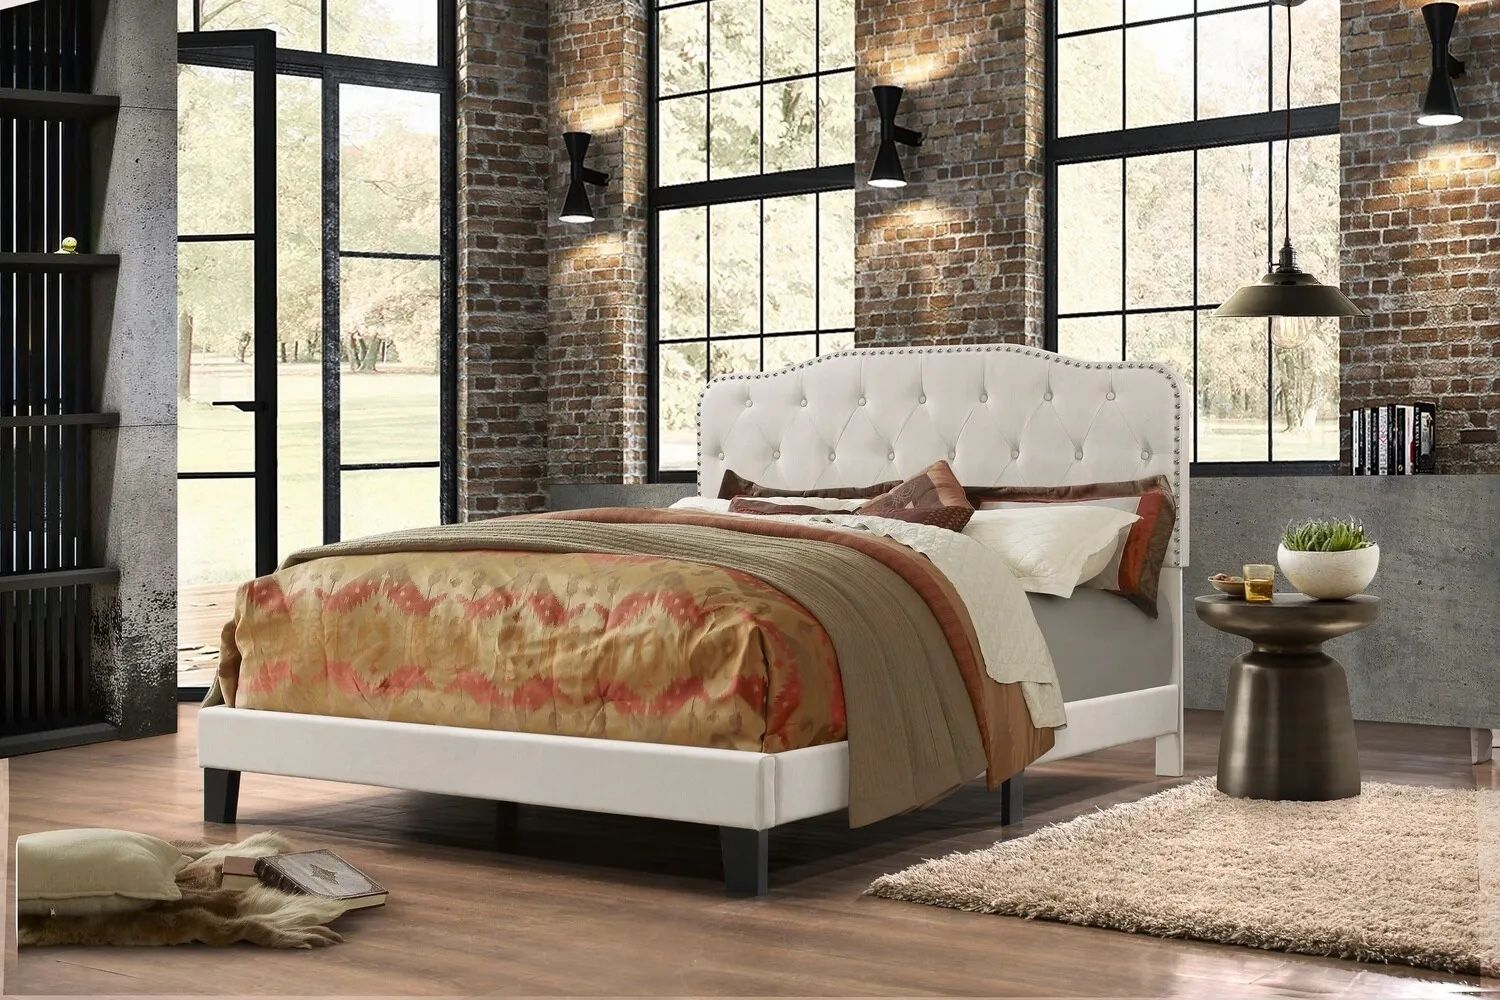 Oasis Twin size bed, available in Full and Queen size and 4 colors $239.00 Hot But! In Stock! Free Delivery 🚚